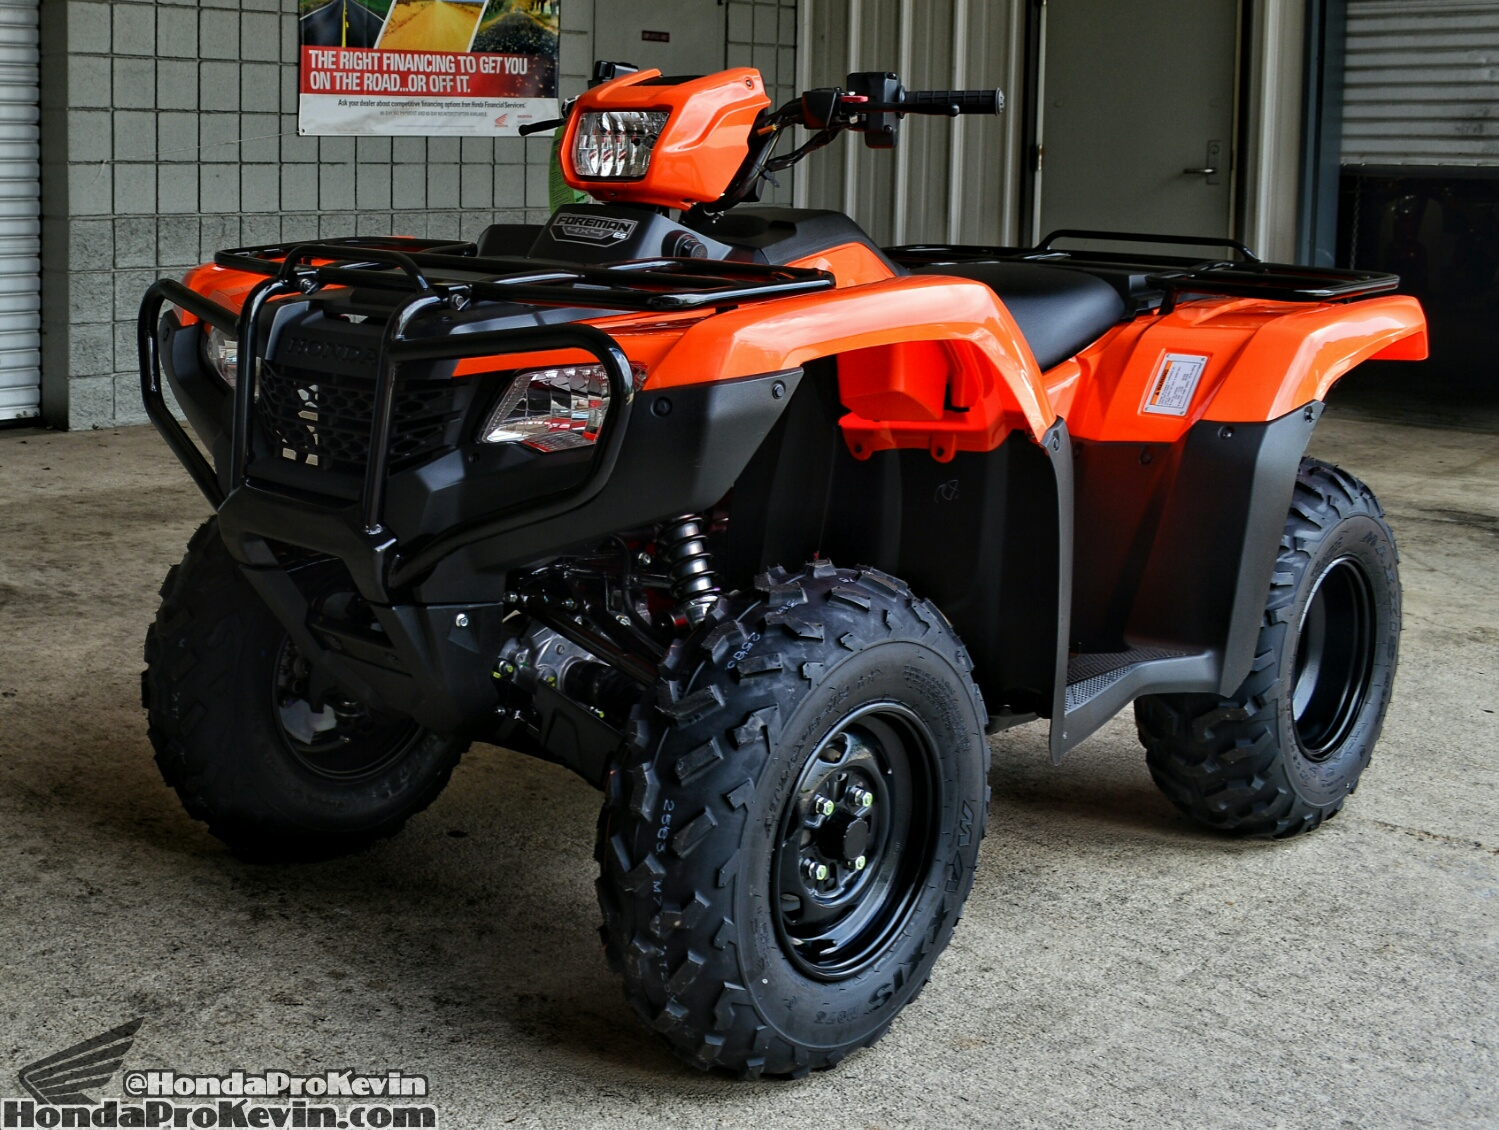 2016-Honda-Foreman-500-ATV-Review-Specs-Horsepower-Price-Four-Wheeler-4x4-Quad-TRX500